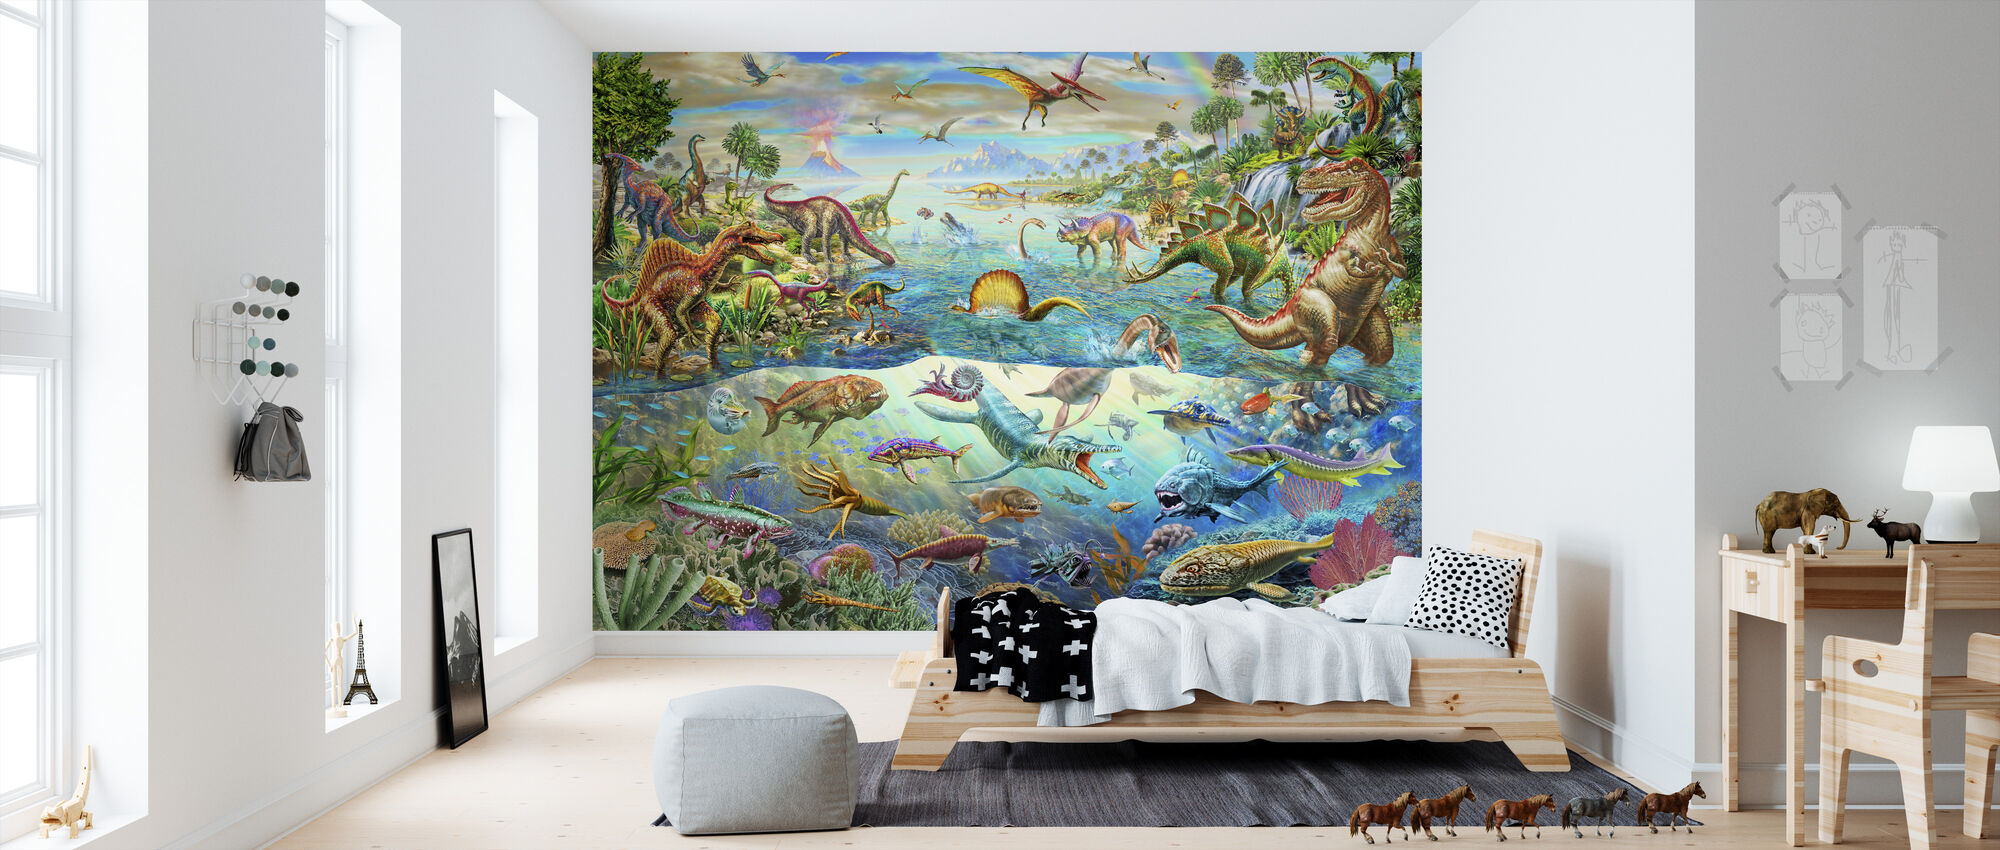 Prehistoric Paradise - Wallpaper - Kids Room